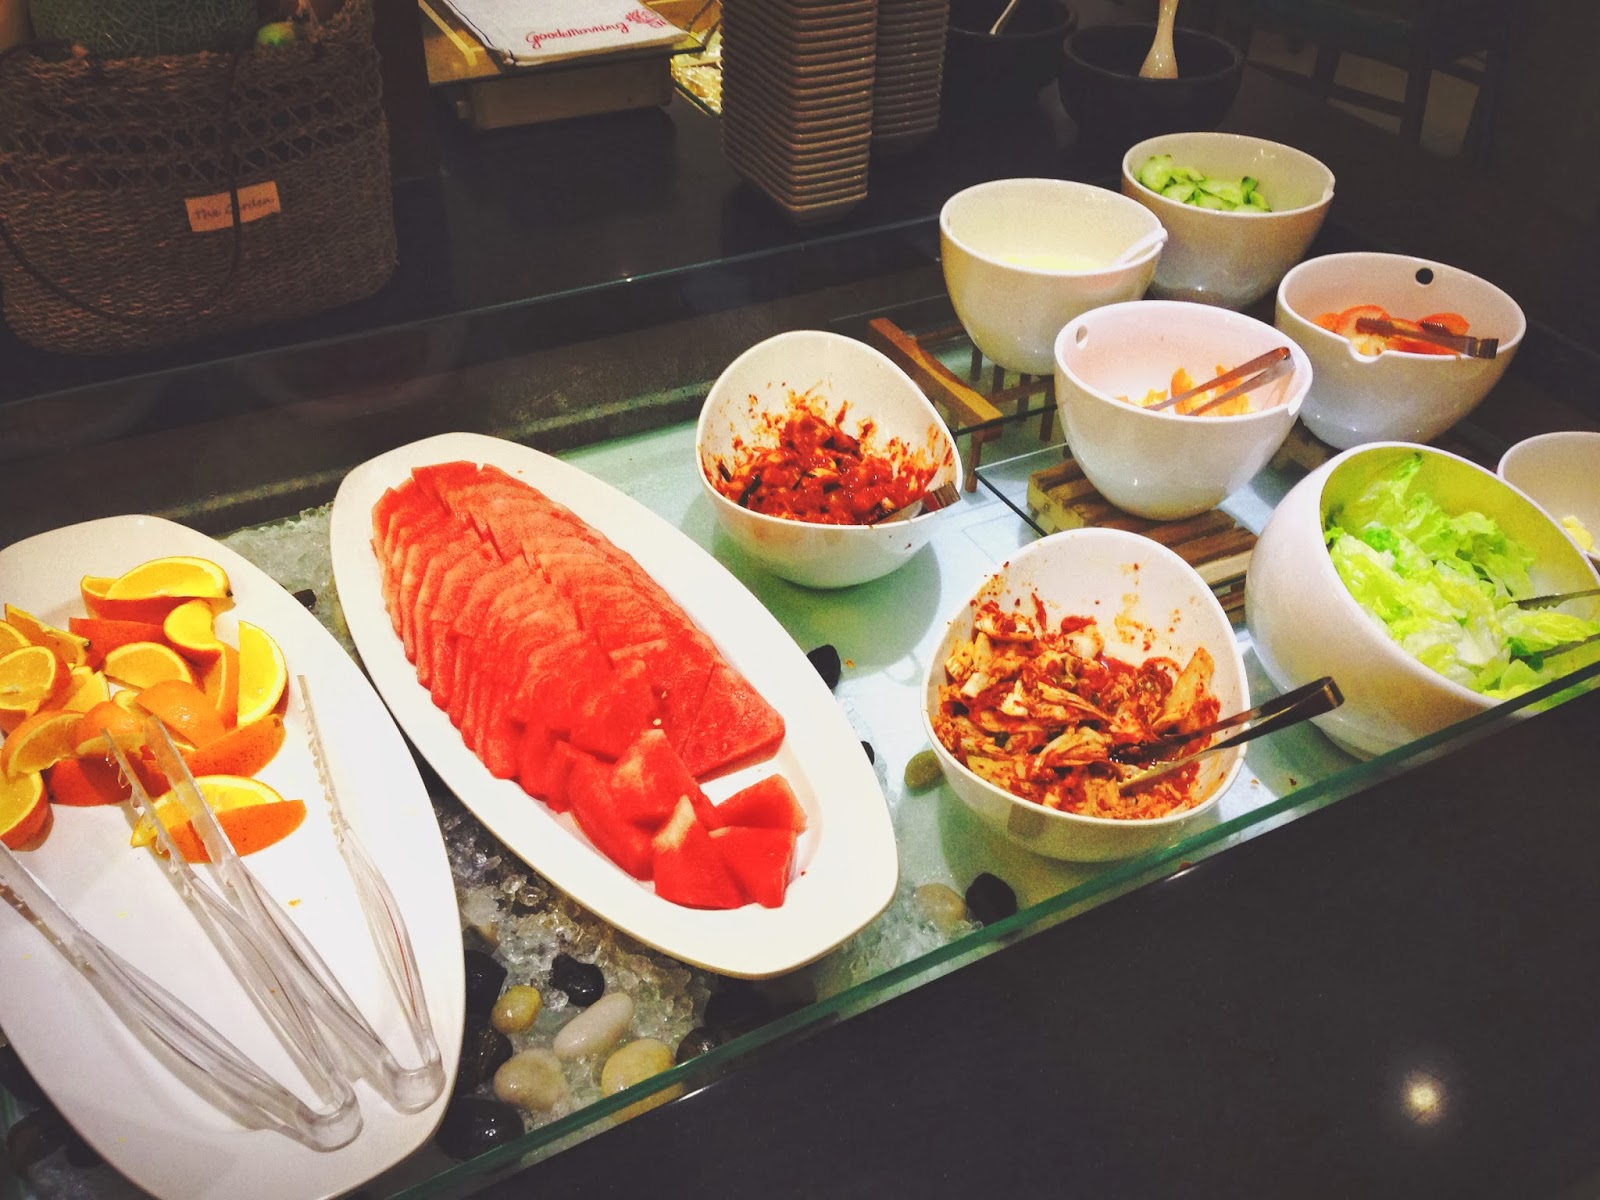 Manbok Korean BBQ Salad Bar